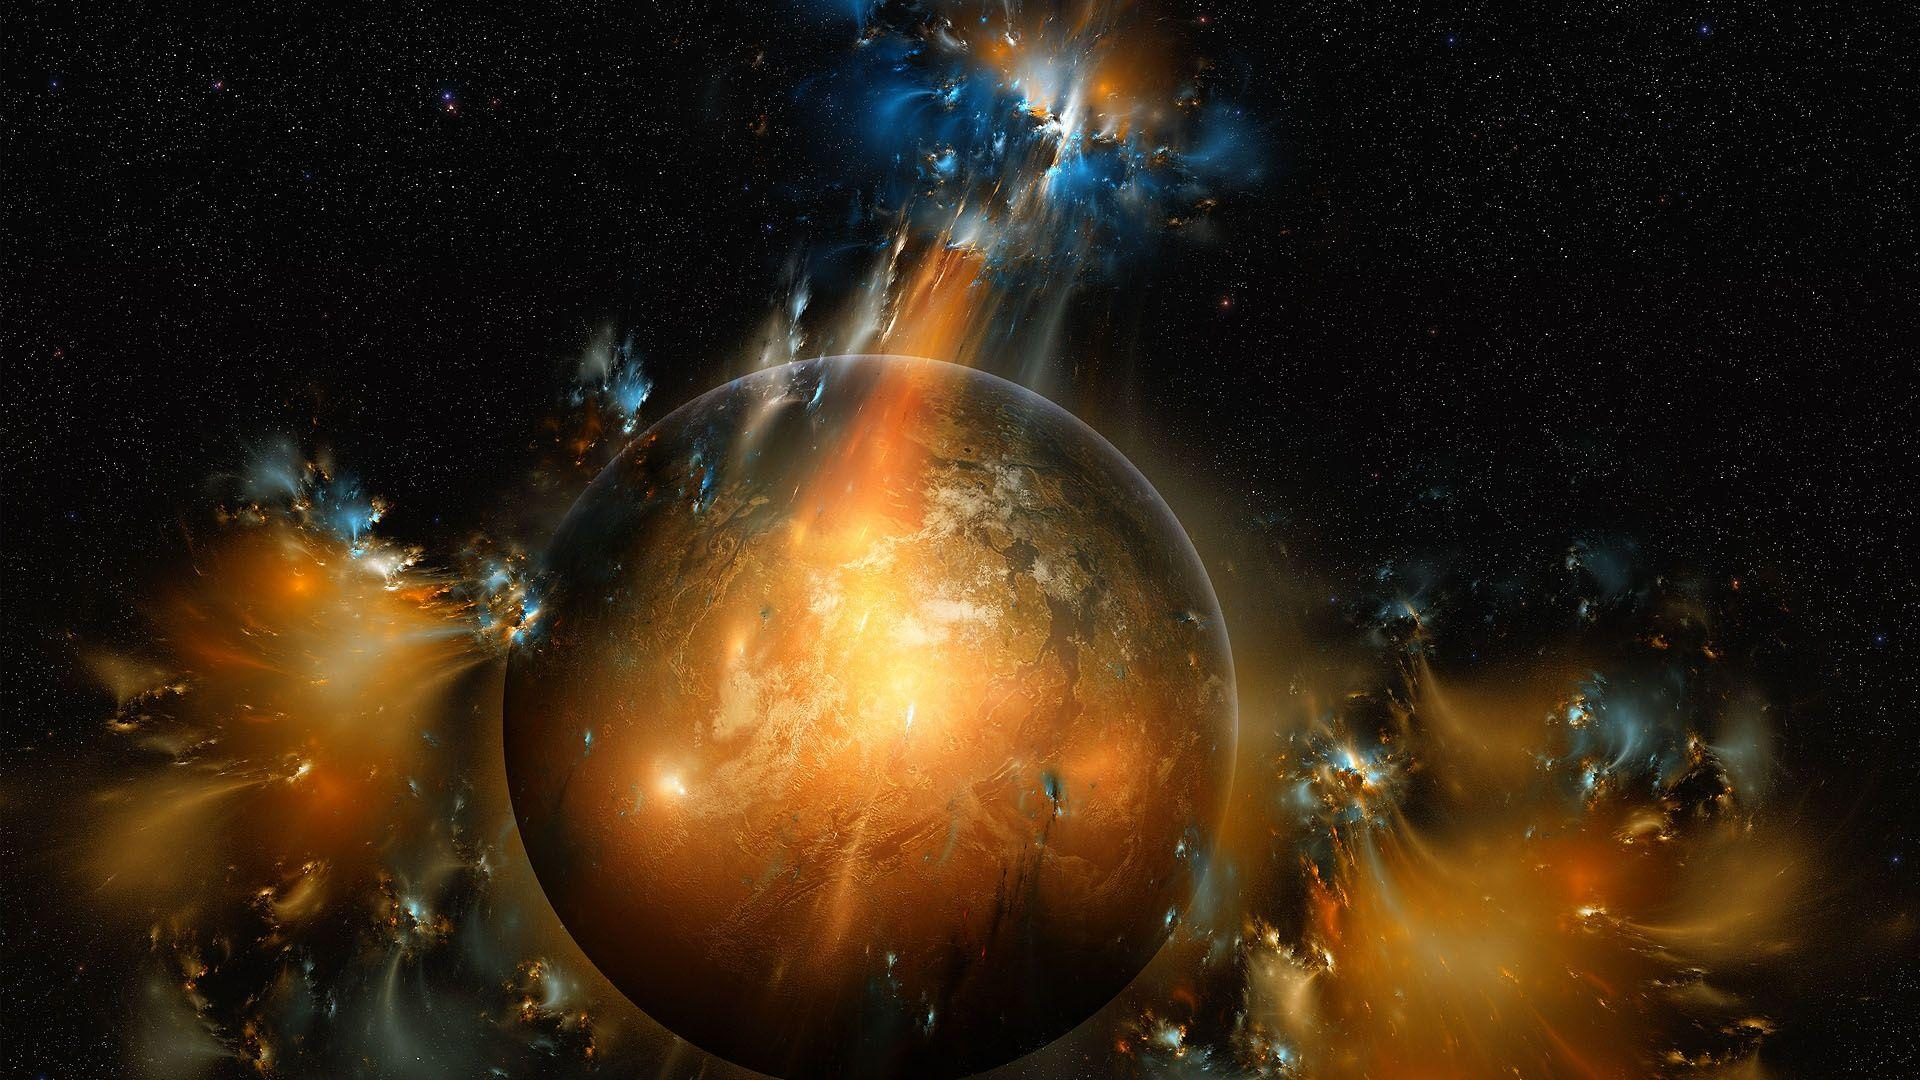 Solar System Hd Wallpapers 1080p: Solar System Explosions Hd ...